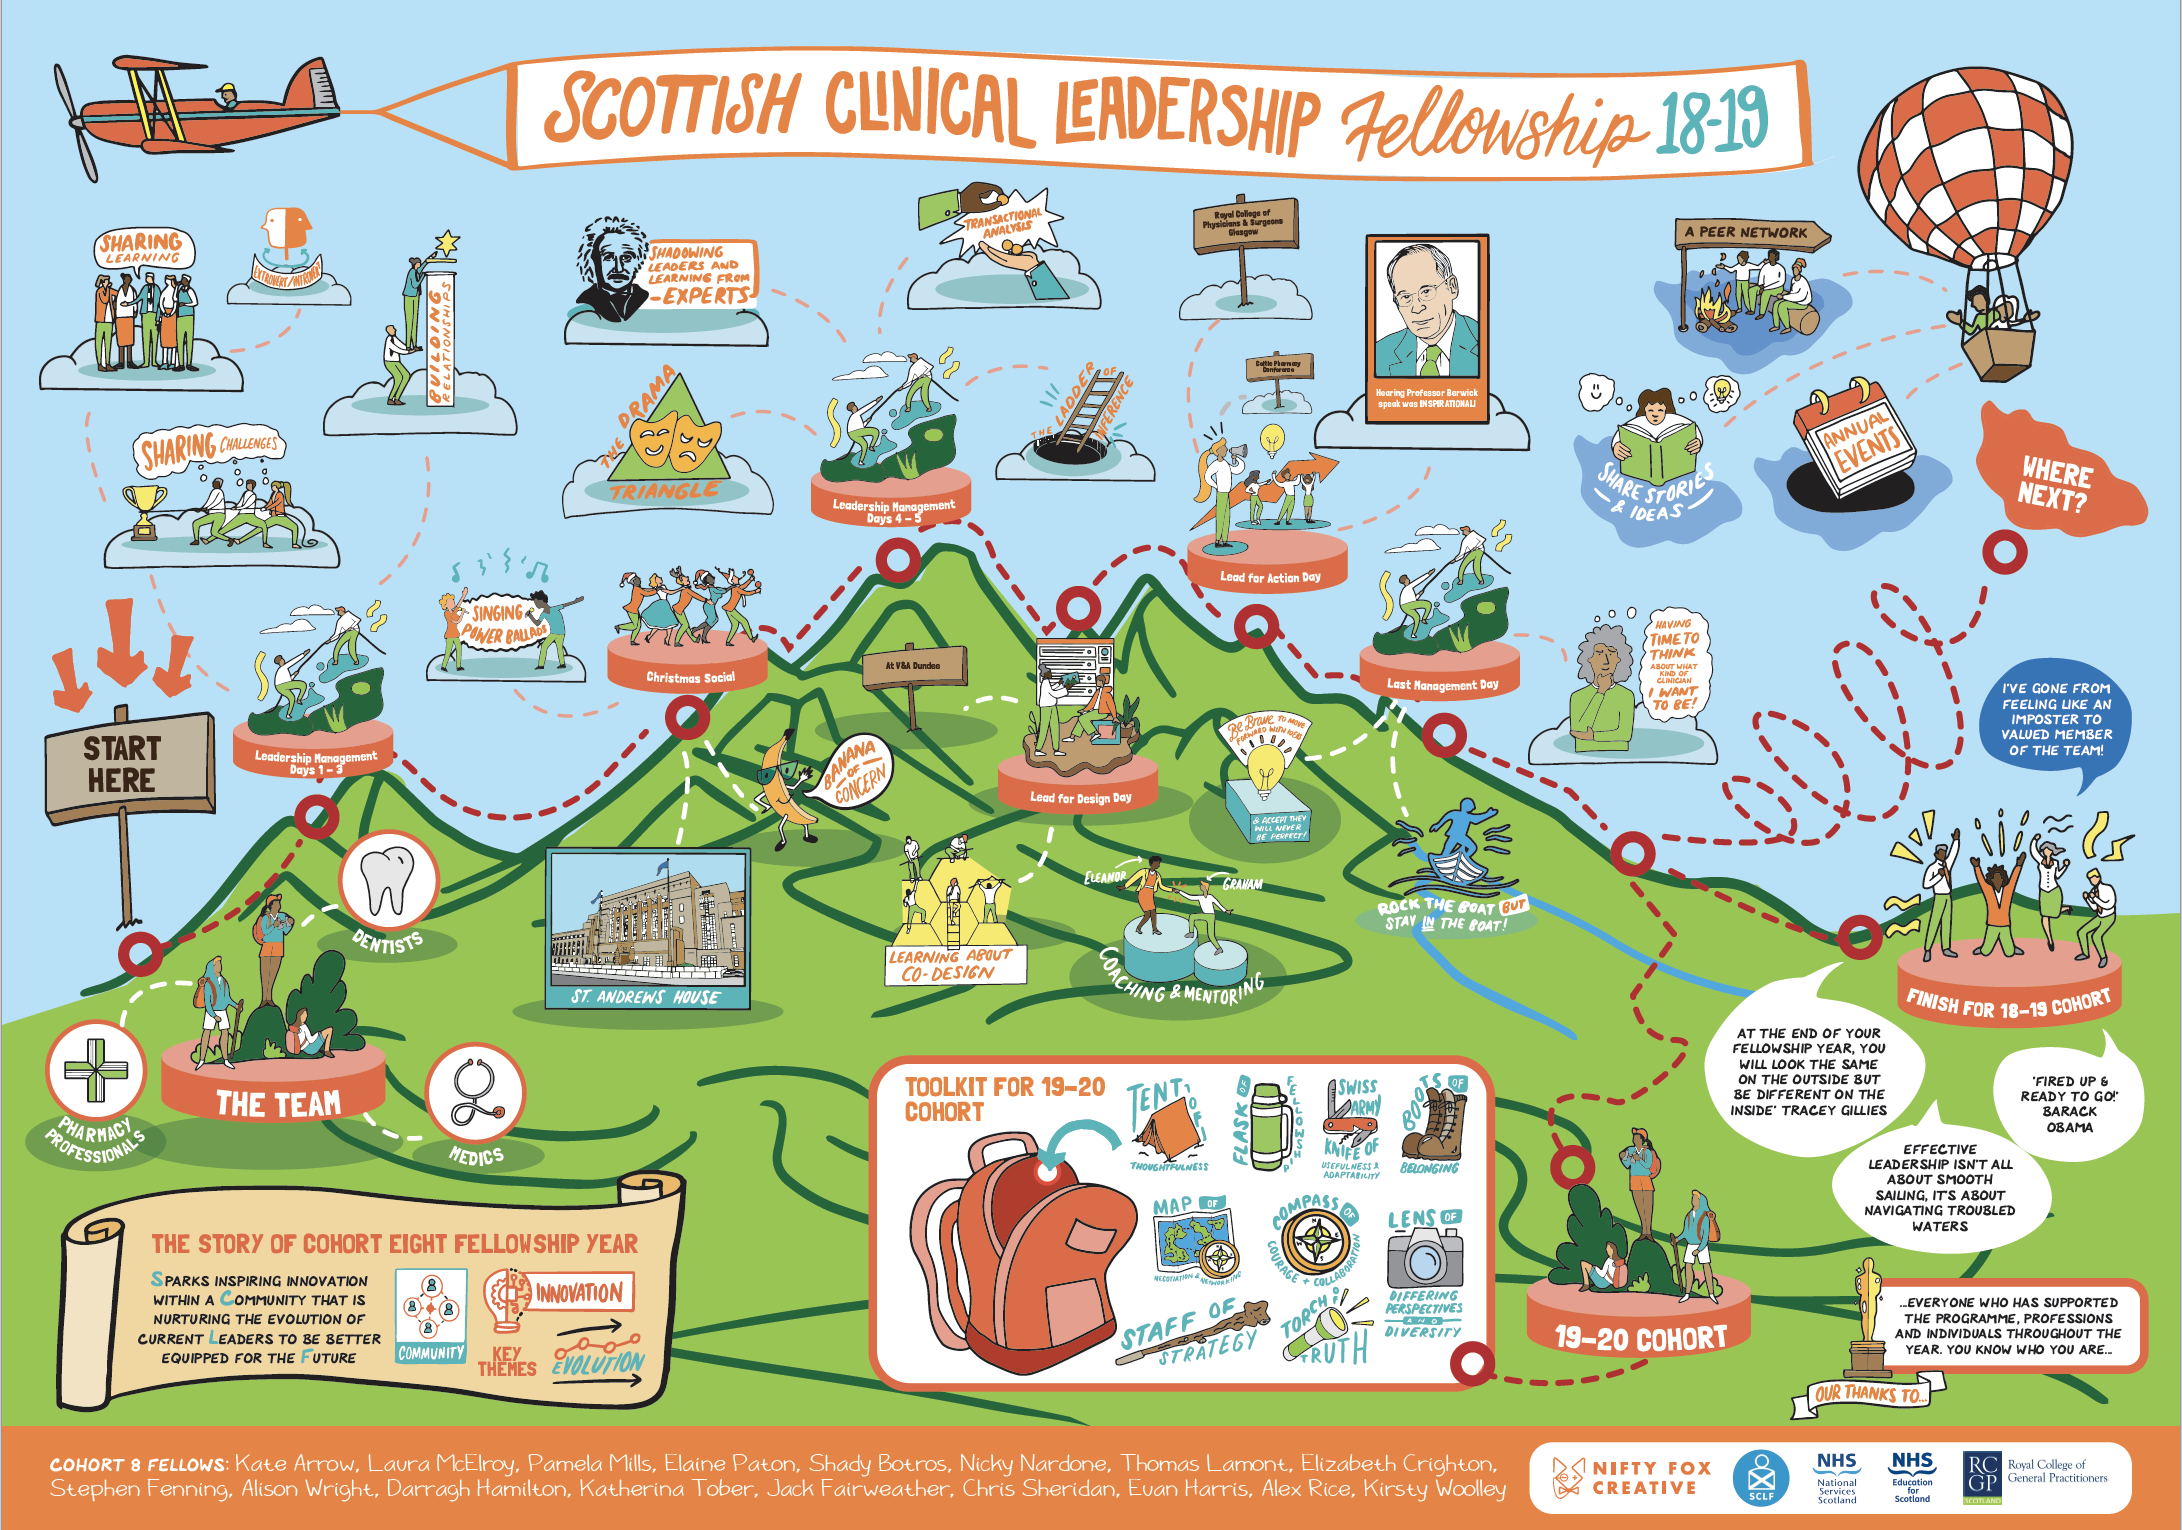 A0 Poster illustrating the SCLF journey over 18-19